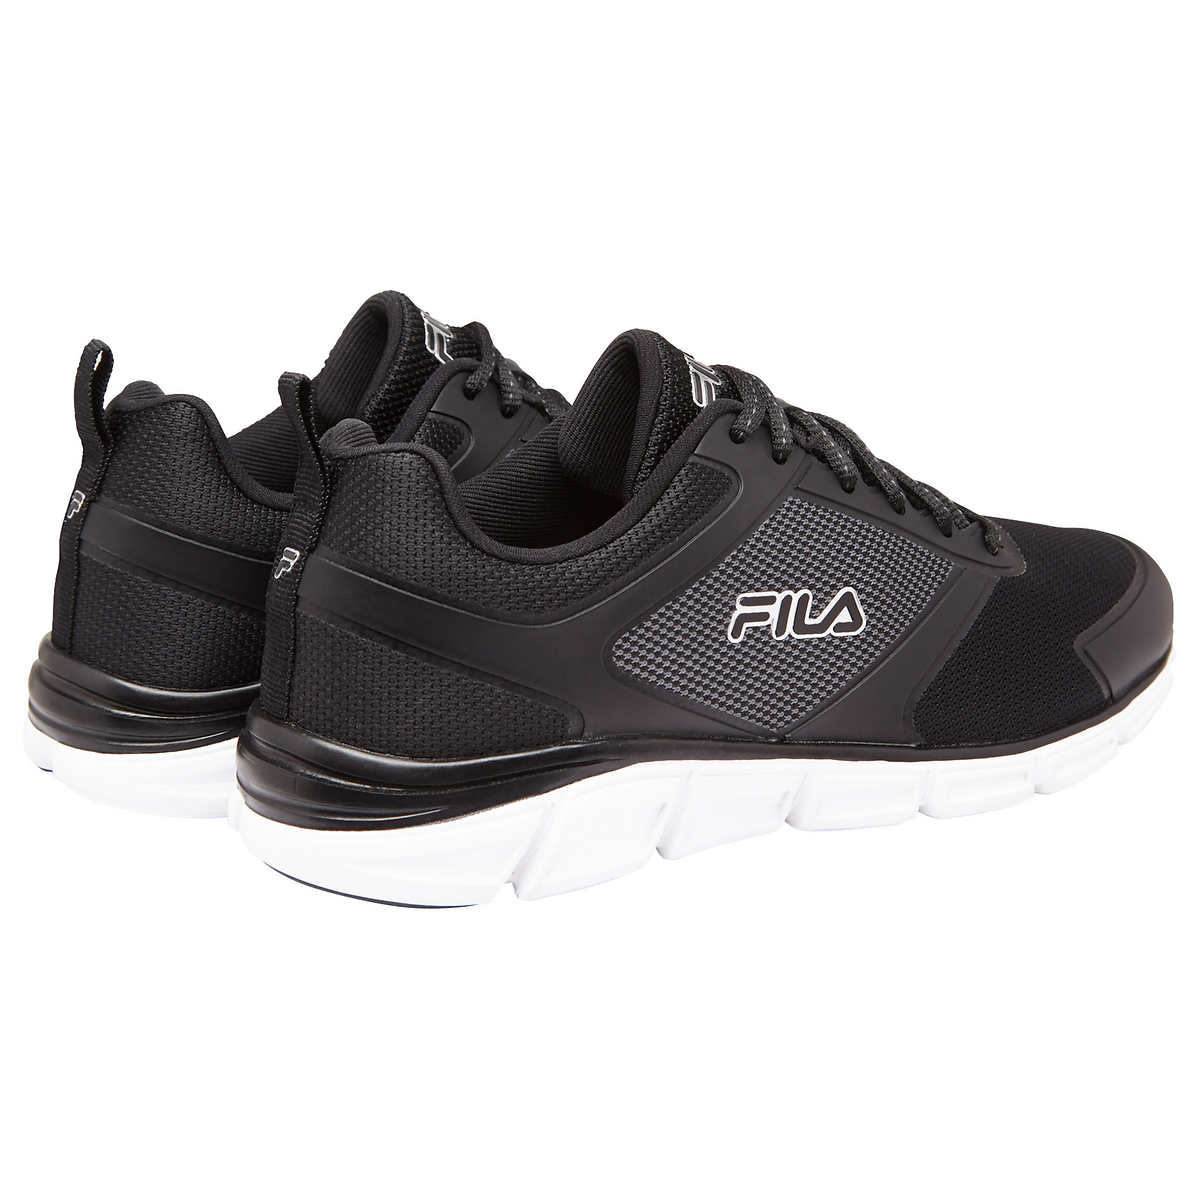 badbe0513 Fila - FILA Men s Memory Foam SteelSprint Athletic Shoes (Black